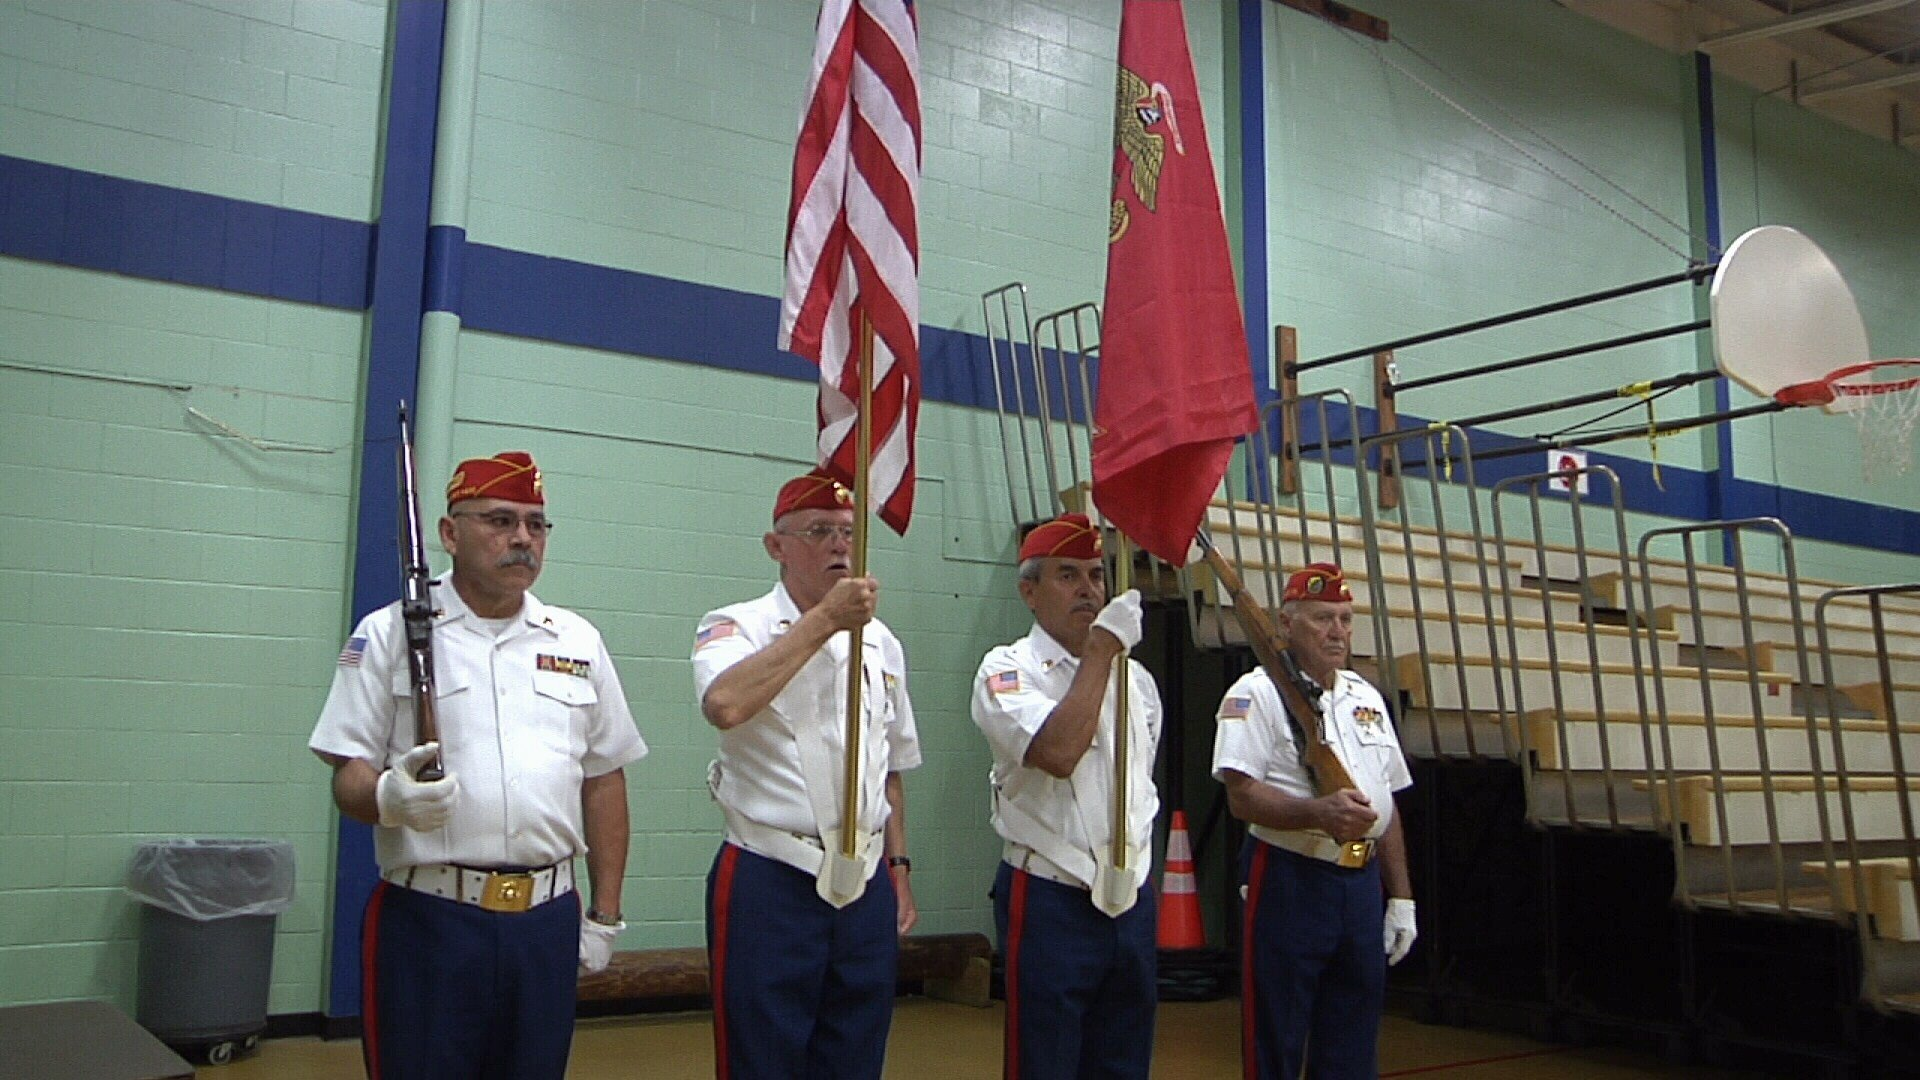 A color guard presented the nation's flags in honor of Armed Forces Day on Saturday.